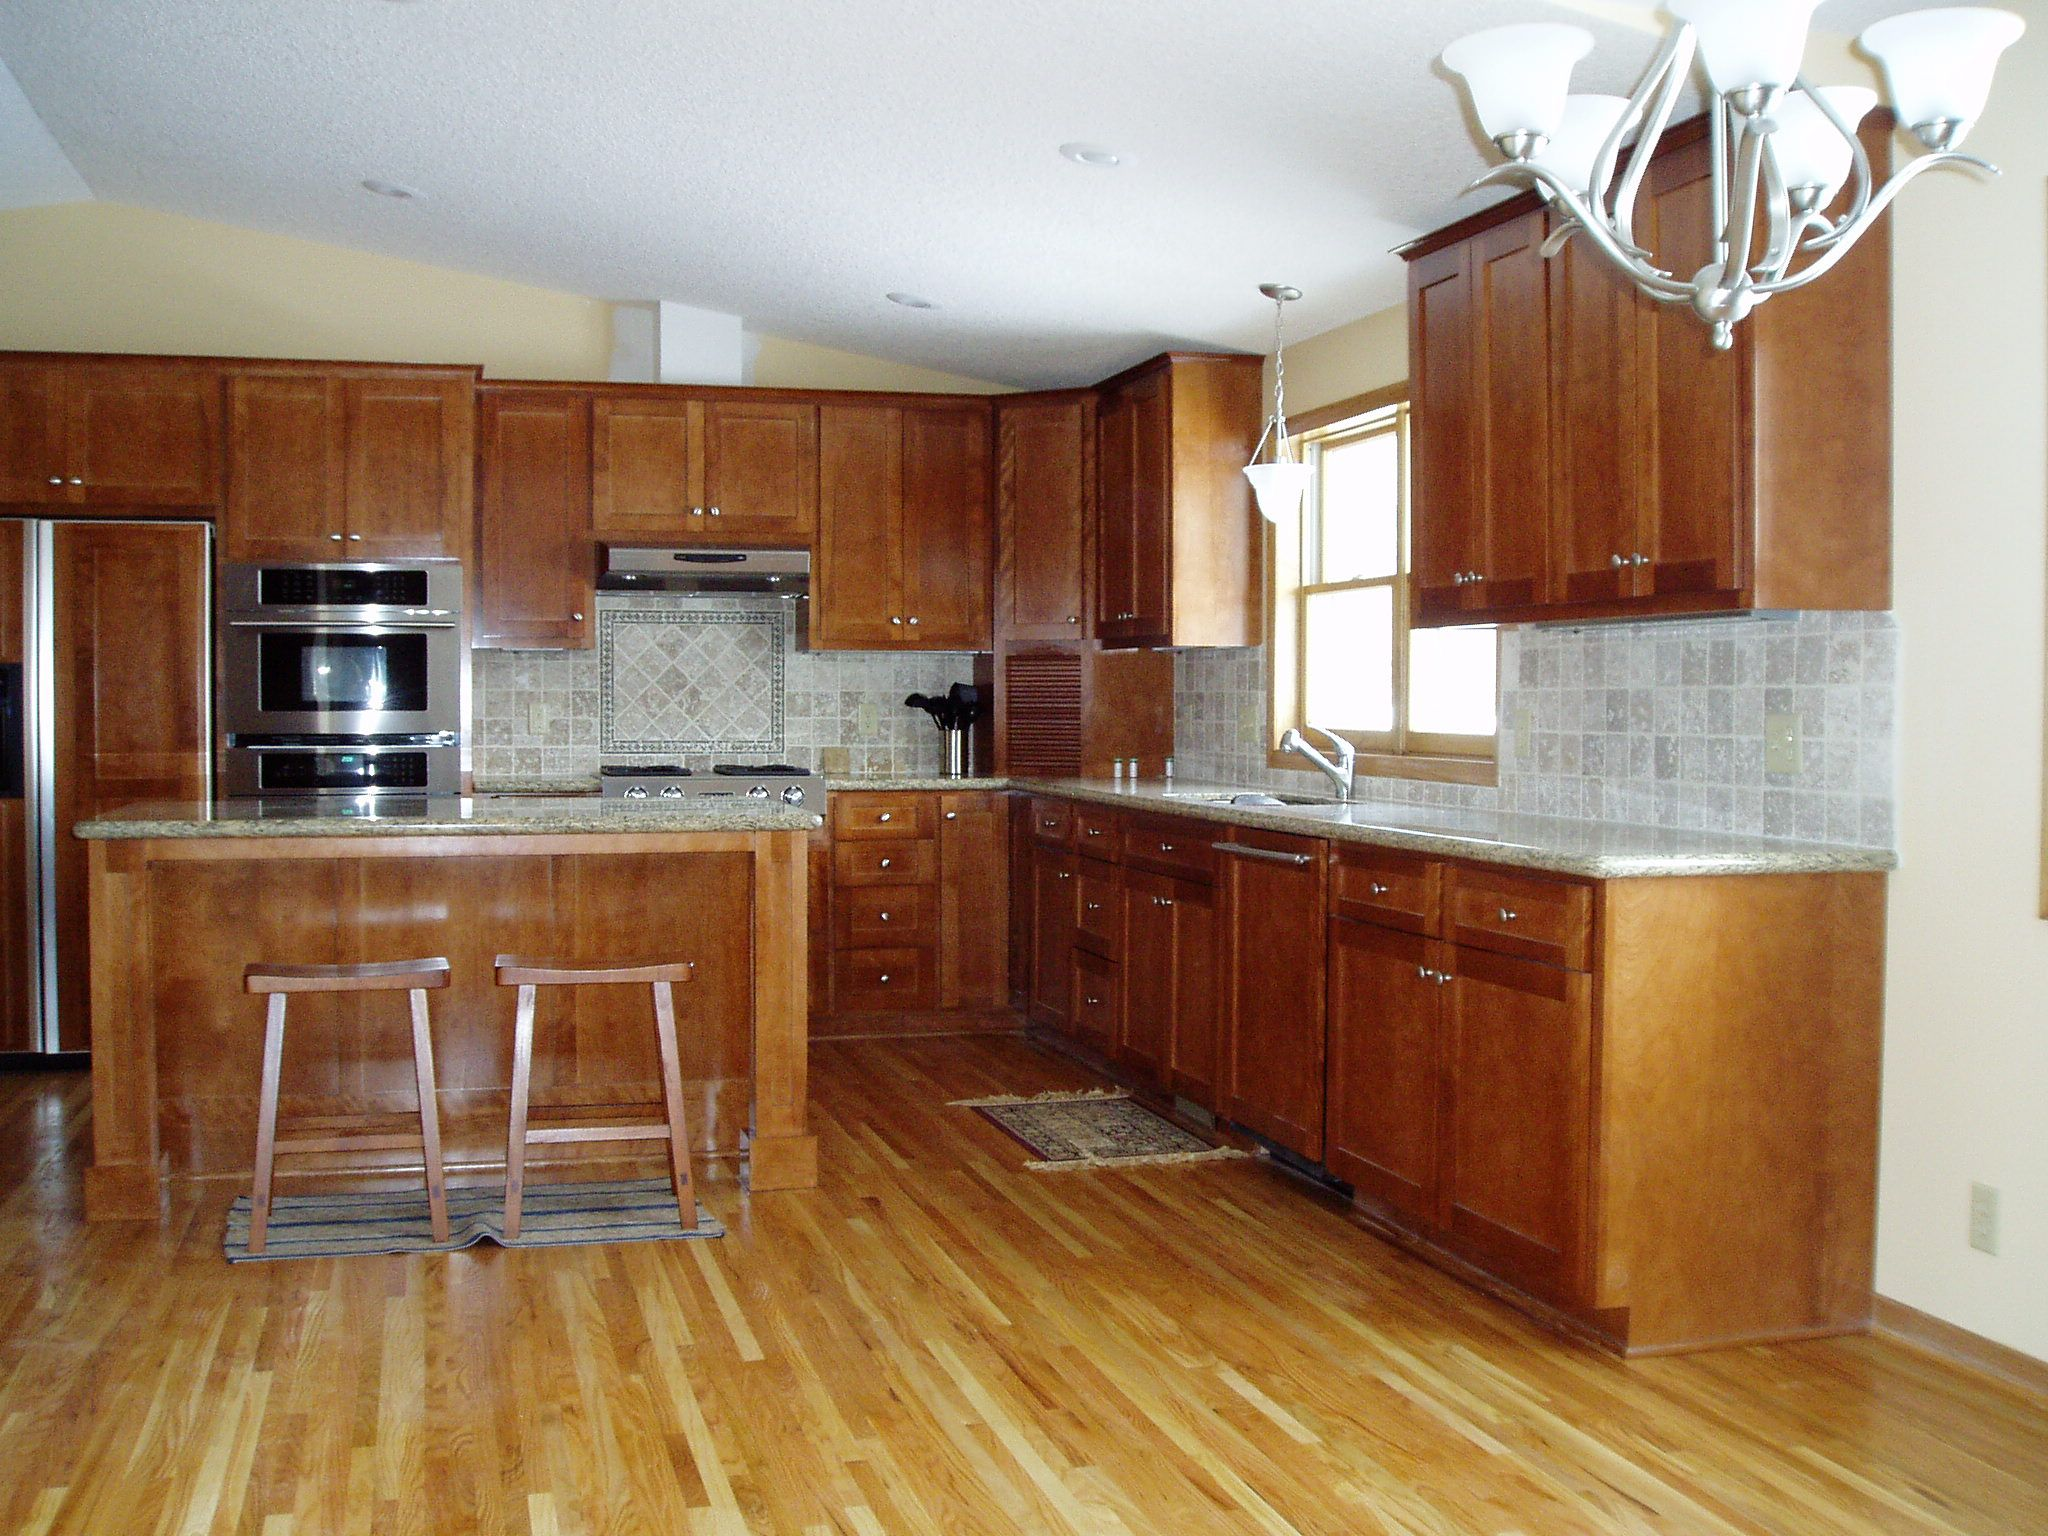 Oak Floors In Kitchen Wood Flooring That Goes Well With Honey Oak Cabinets Dream Home